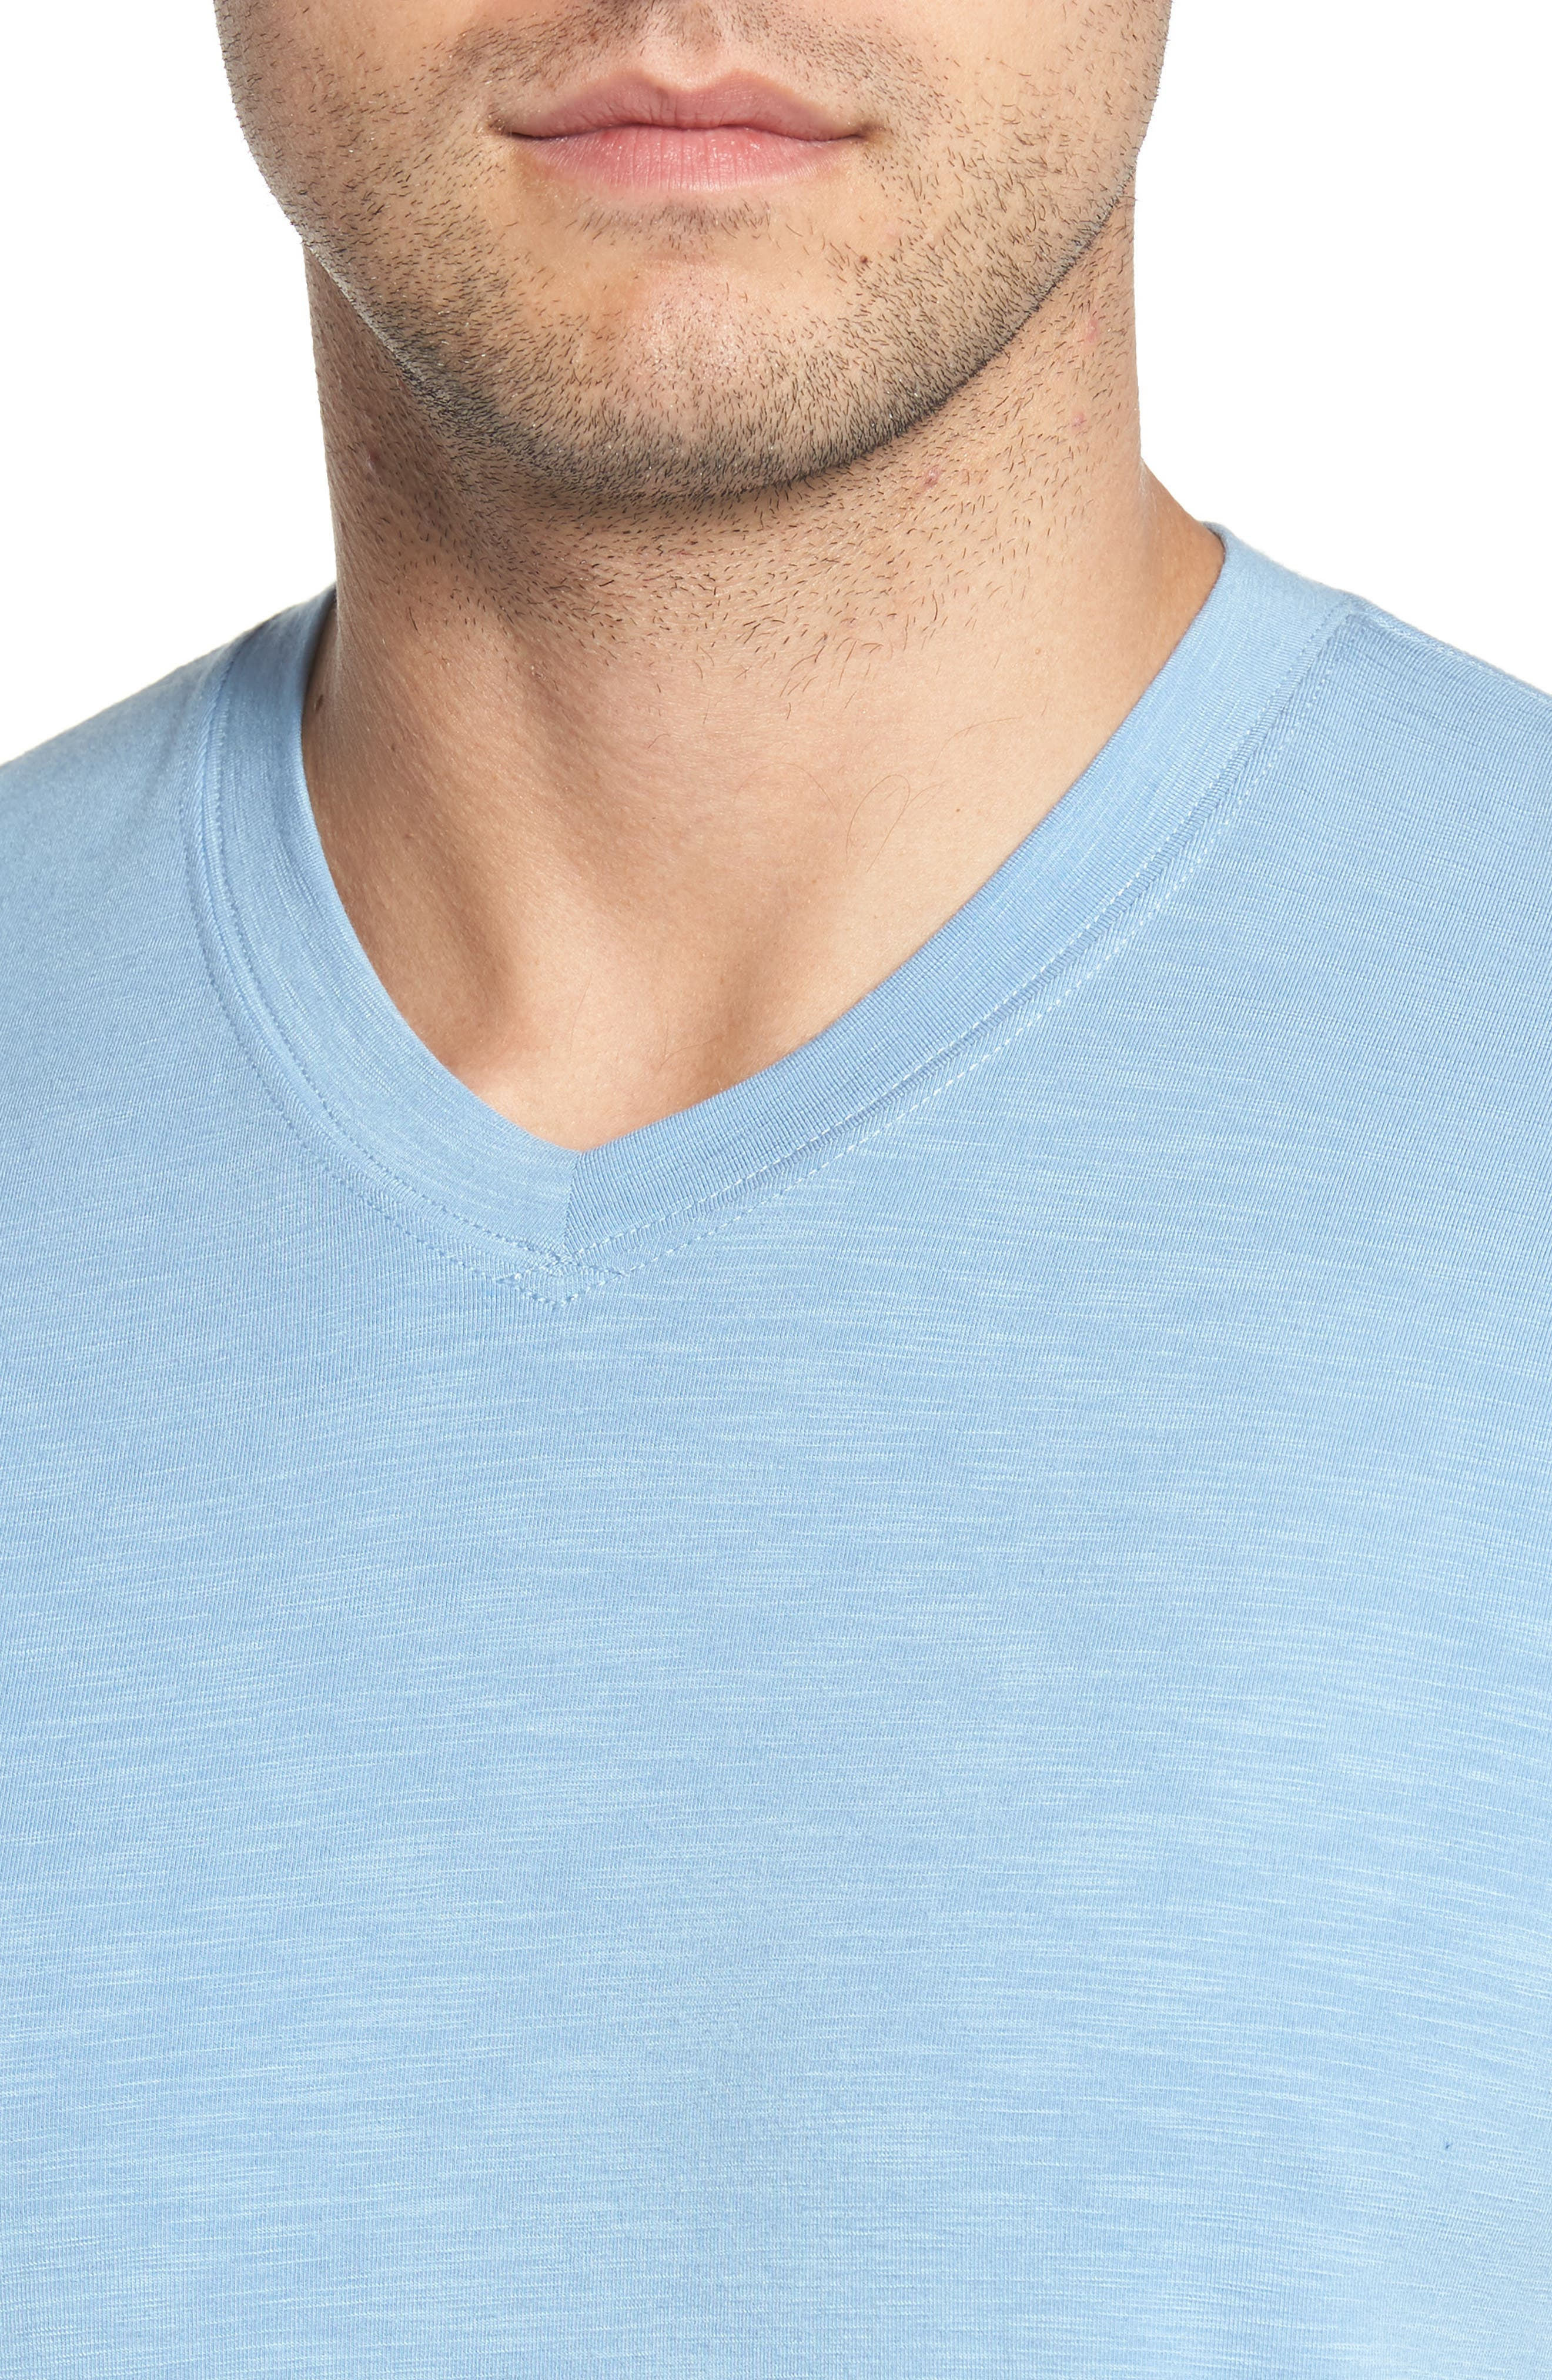 'Trumbull' Trim Fit Slubbed T-Shirt,                             Alternate thumbnail 4, color,                             020